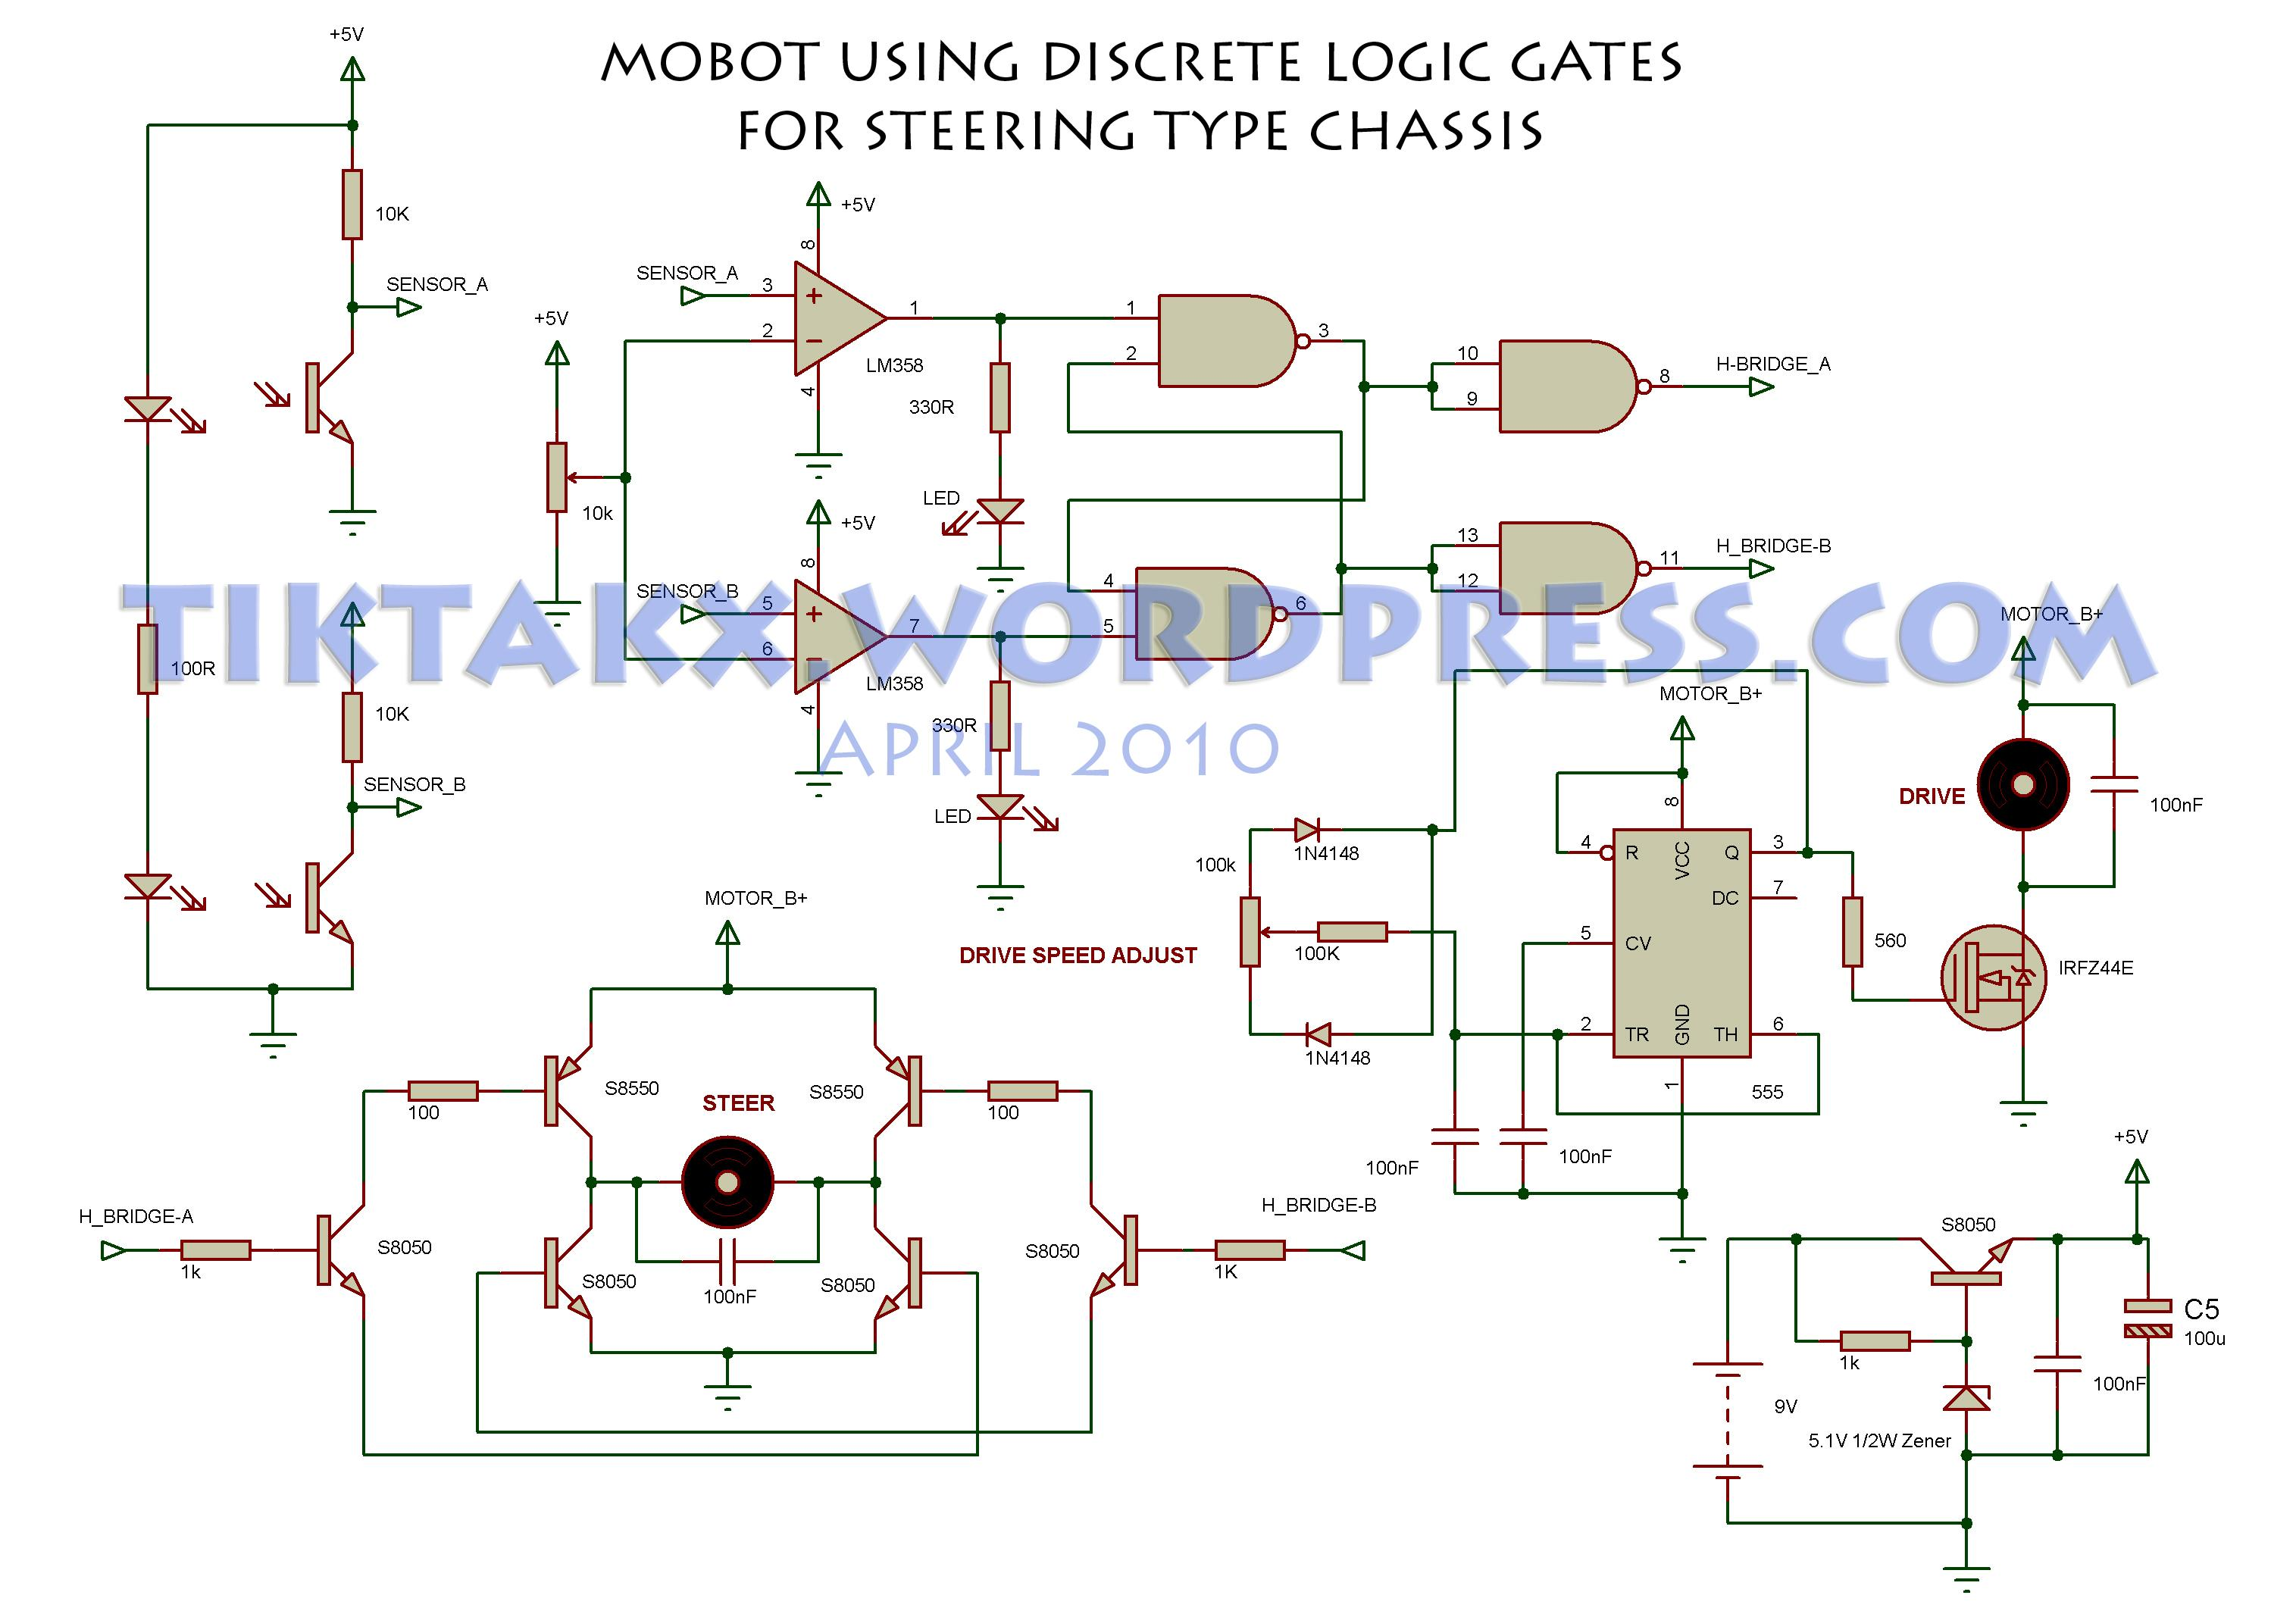 Circuit Diagram Using Logic Gates Wiring Library Design A 2bit Full Adder To Display Numbe Cheggcom Line Follower